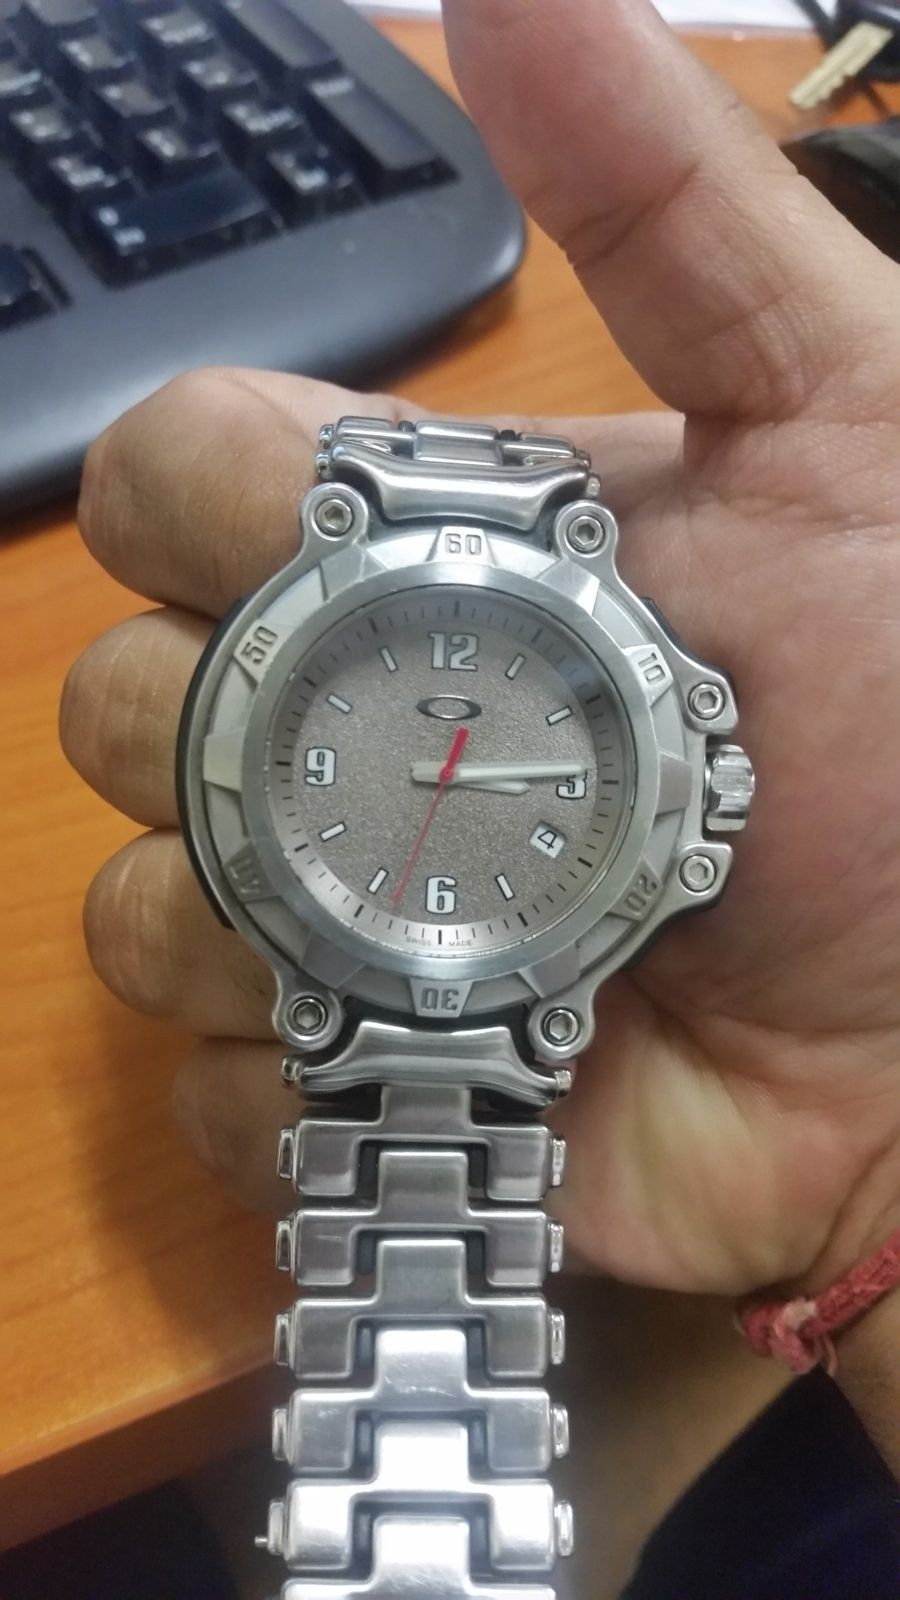 Latest addition to my watch collection - 20160204_151310.jpg